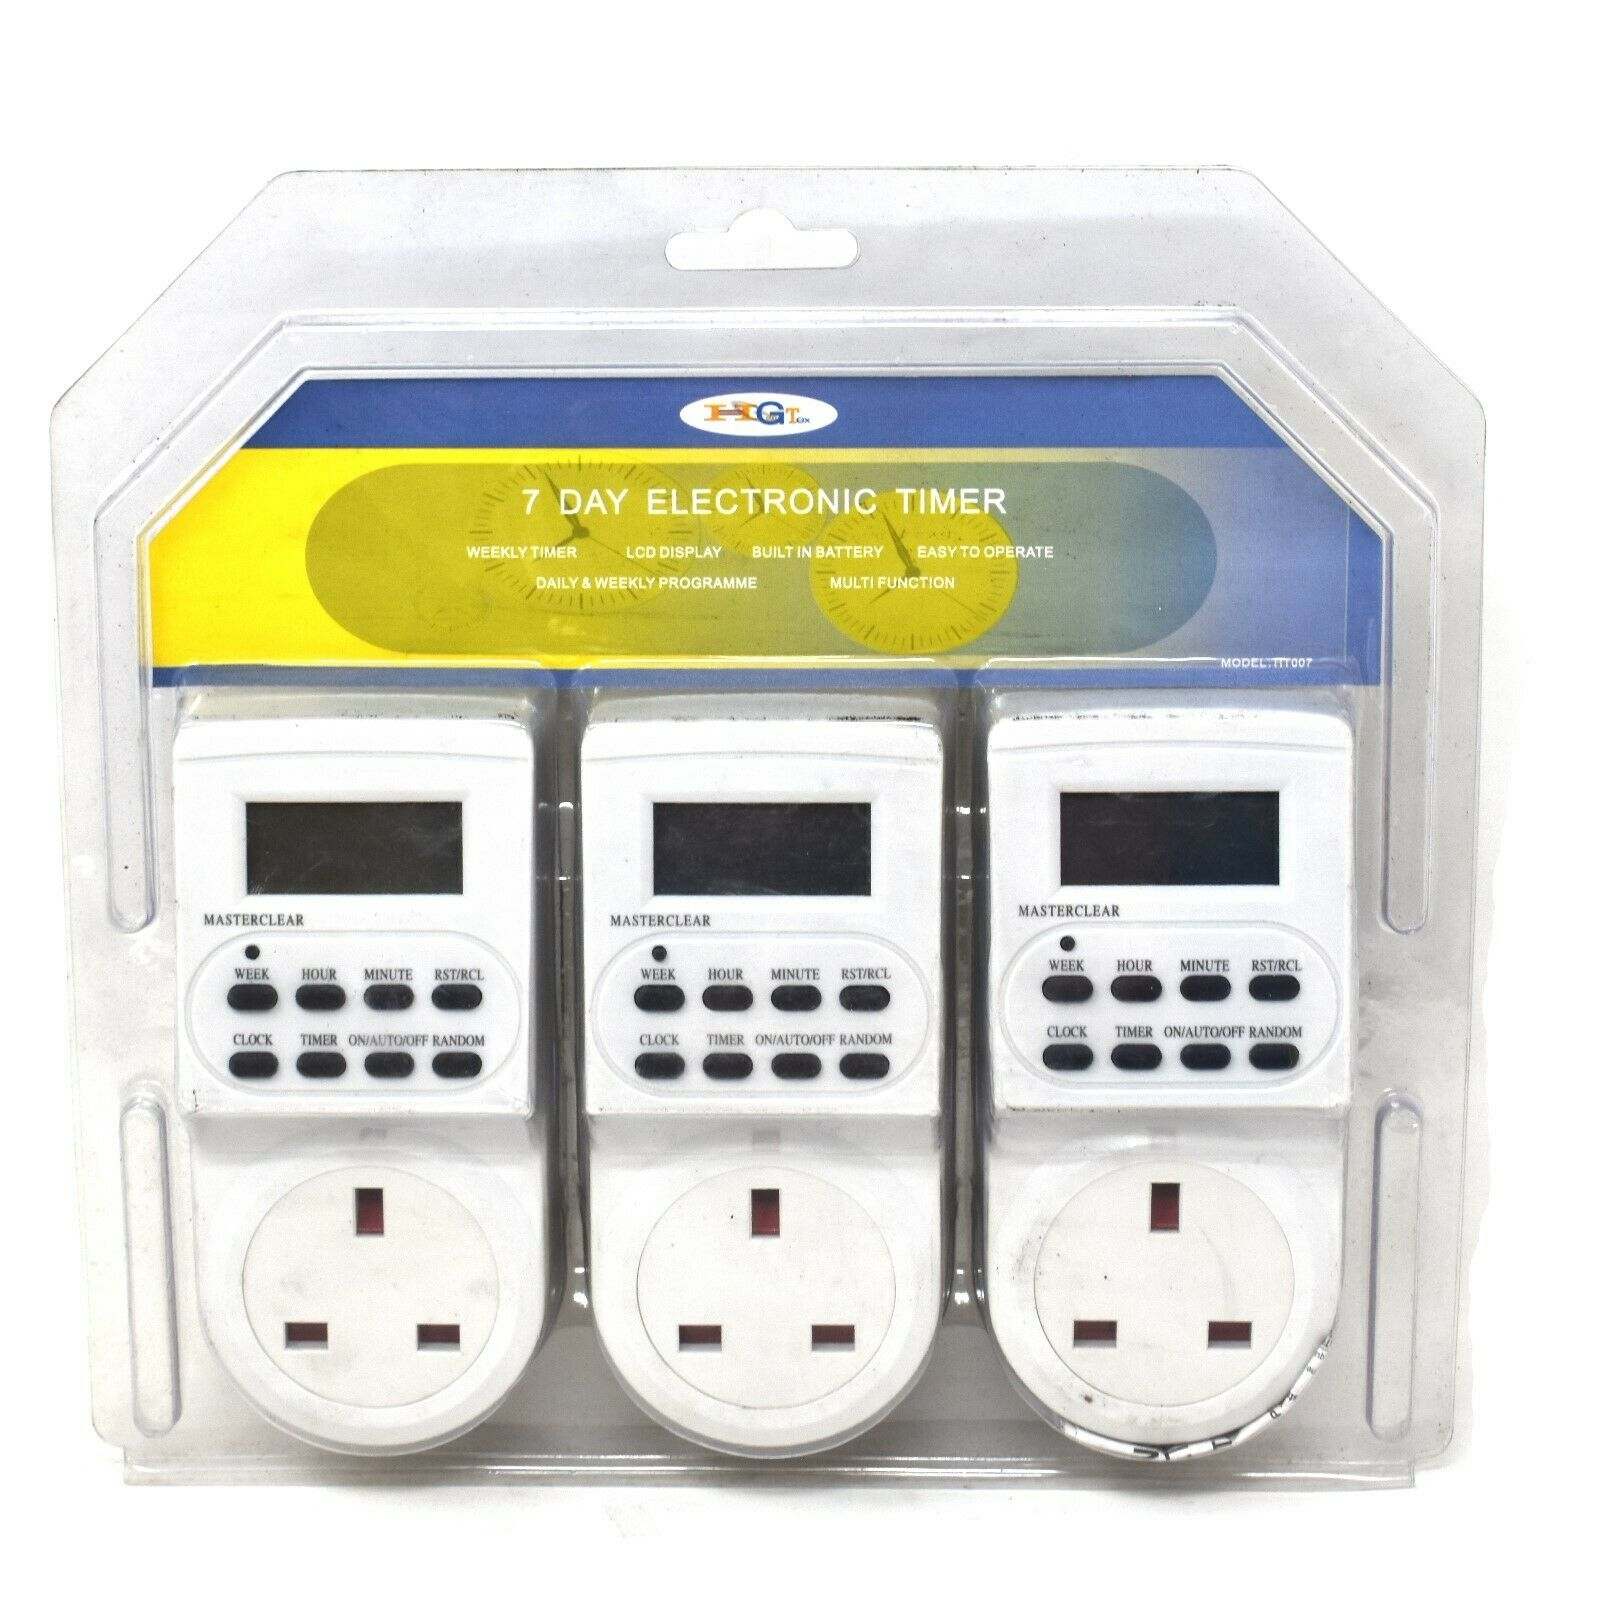 3 x 7 DAY DIGITAL LCD ELECTRONIC PLUG-IN PROGRAM TIMER 12/24 HOUR SWITCH SOCKETS